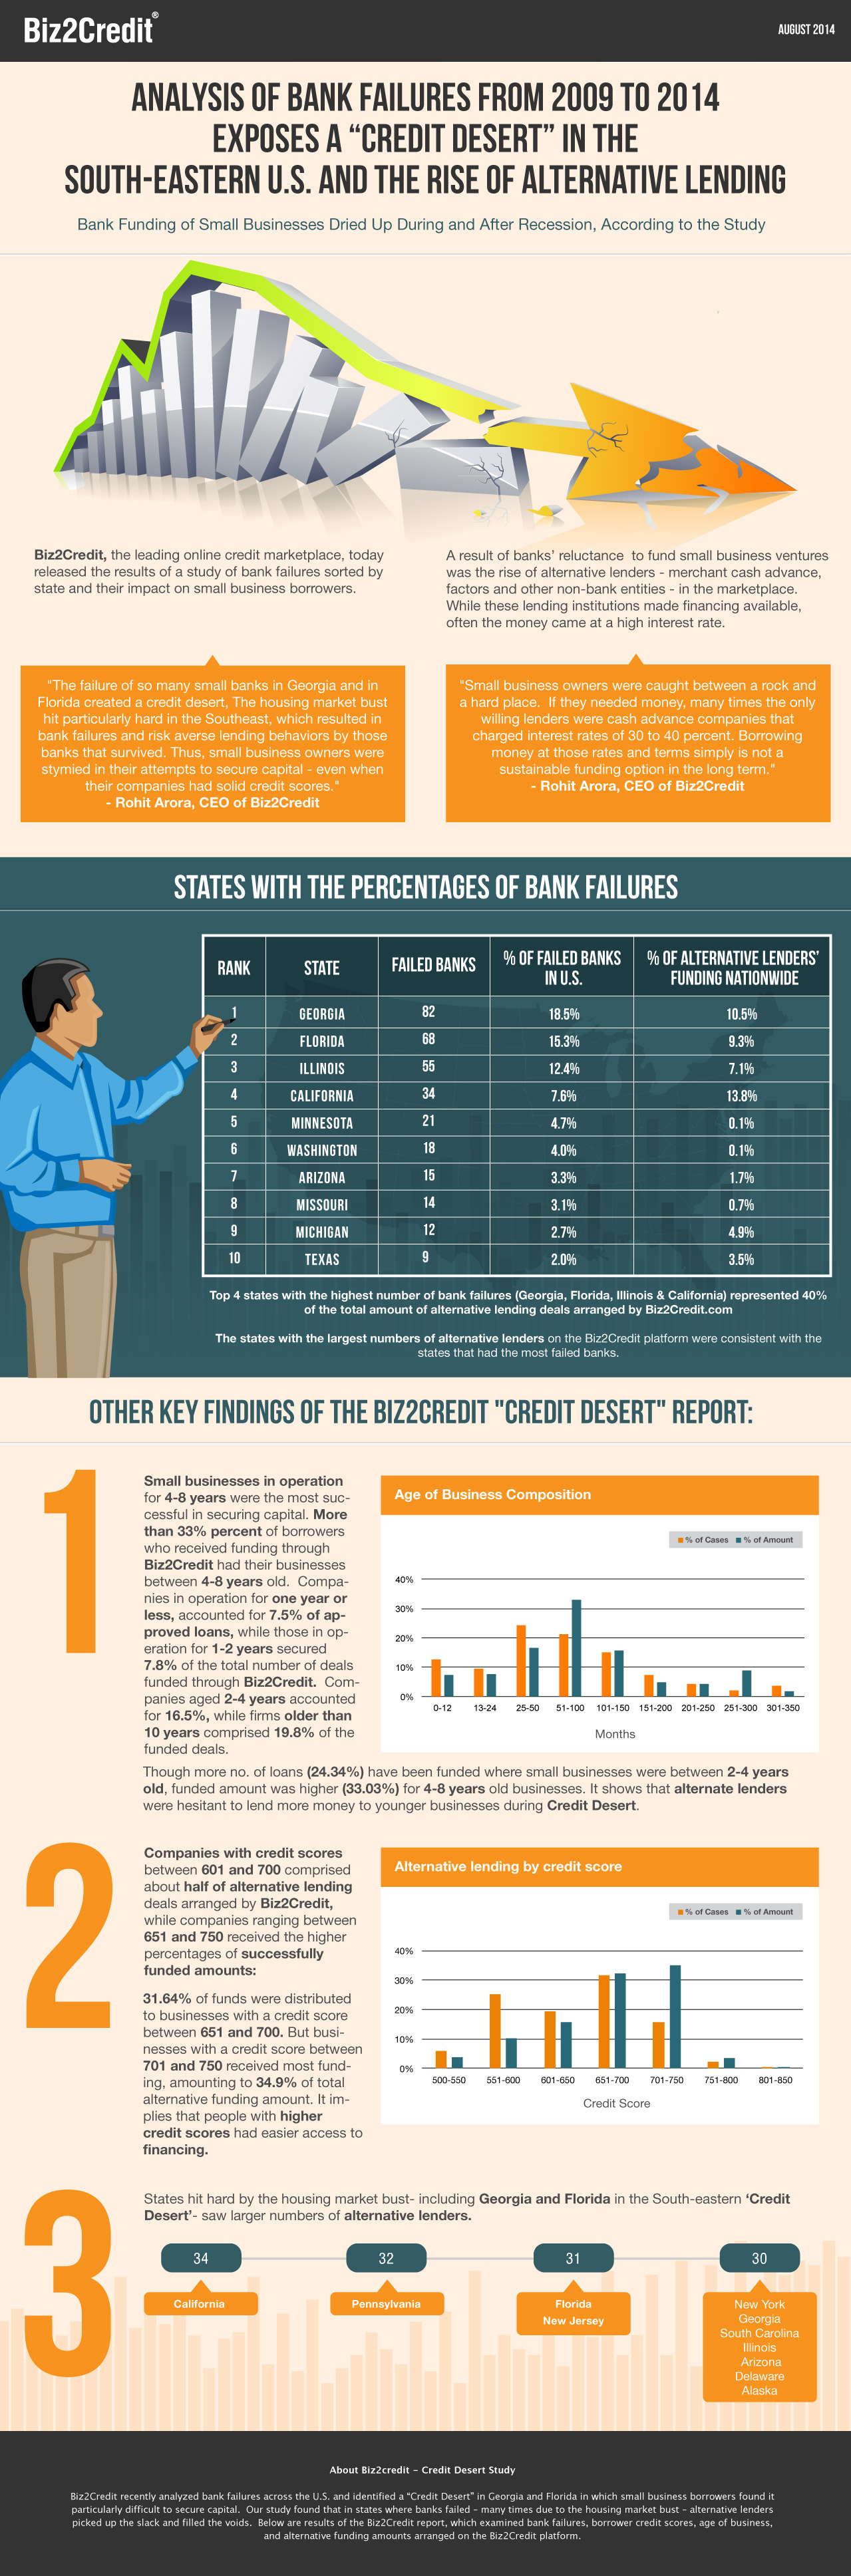 Analysis of Bank Failures from 2009 to 2014 by Biz2Credit